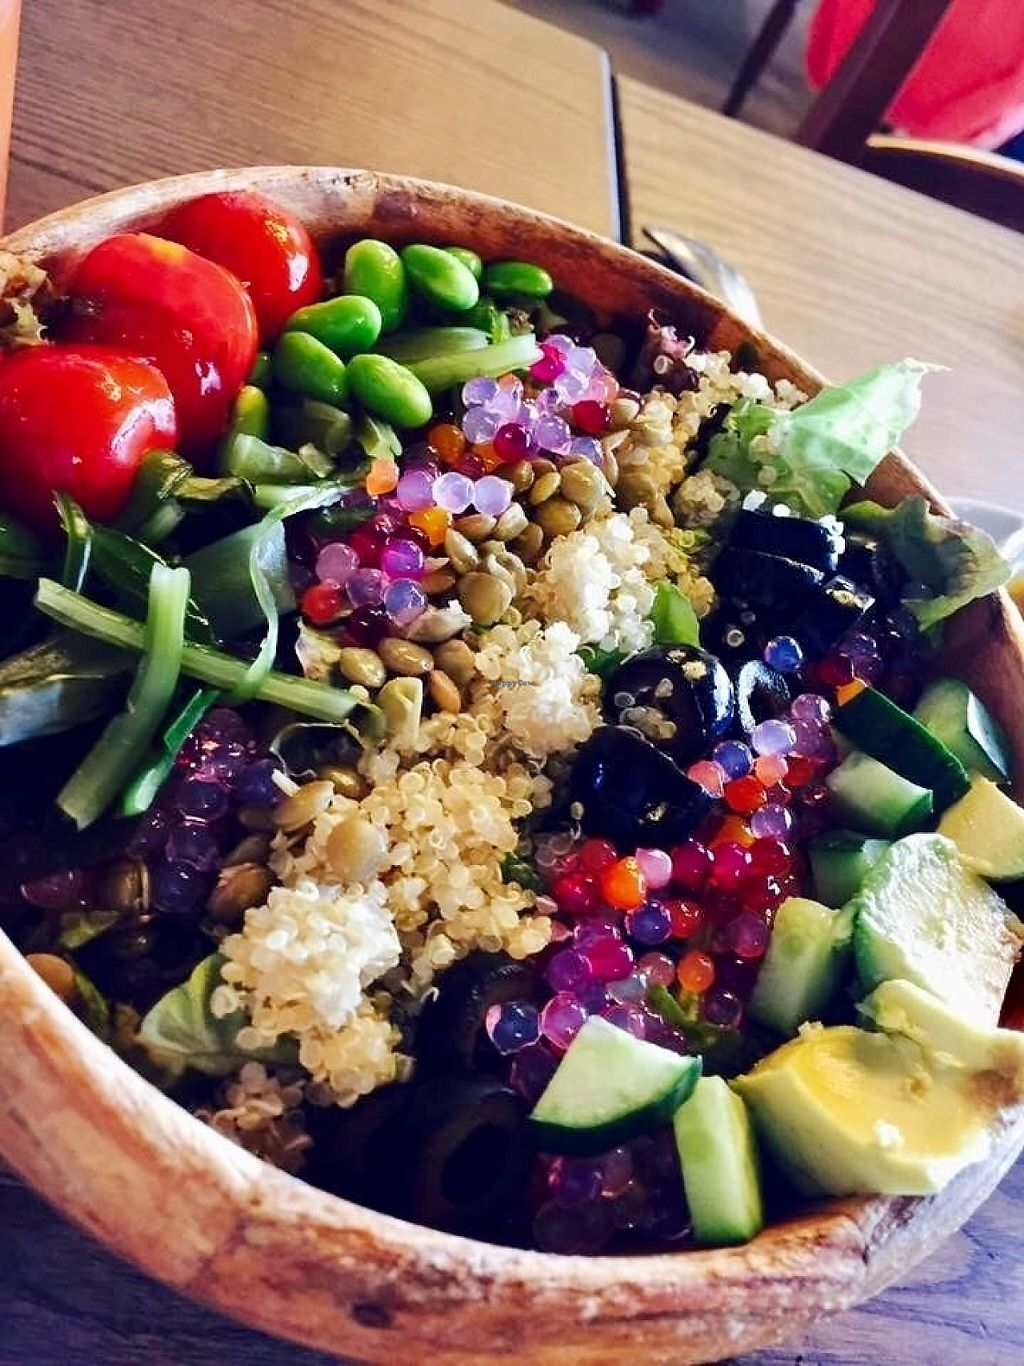 "Photo of CLOSED: Cafe La Boheme - Shibuya  by <a href=""/members/profile/paulkates"">paulkates</a> <br/>Vegan tofu salad <br/> June 7, 2017  - <a href='/contact/abuse/image/93483/266537'>Report</a>"